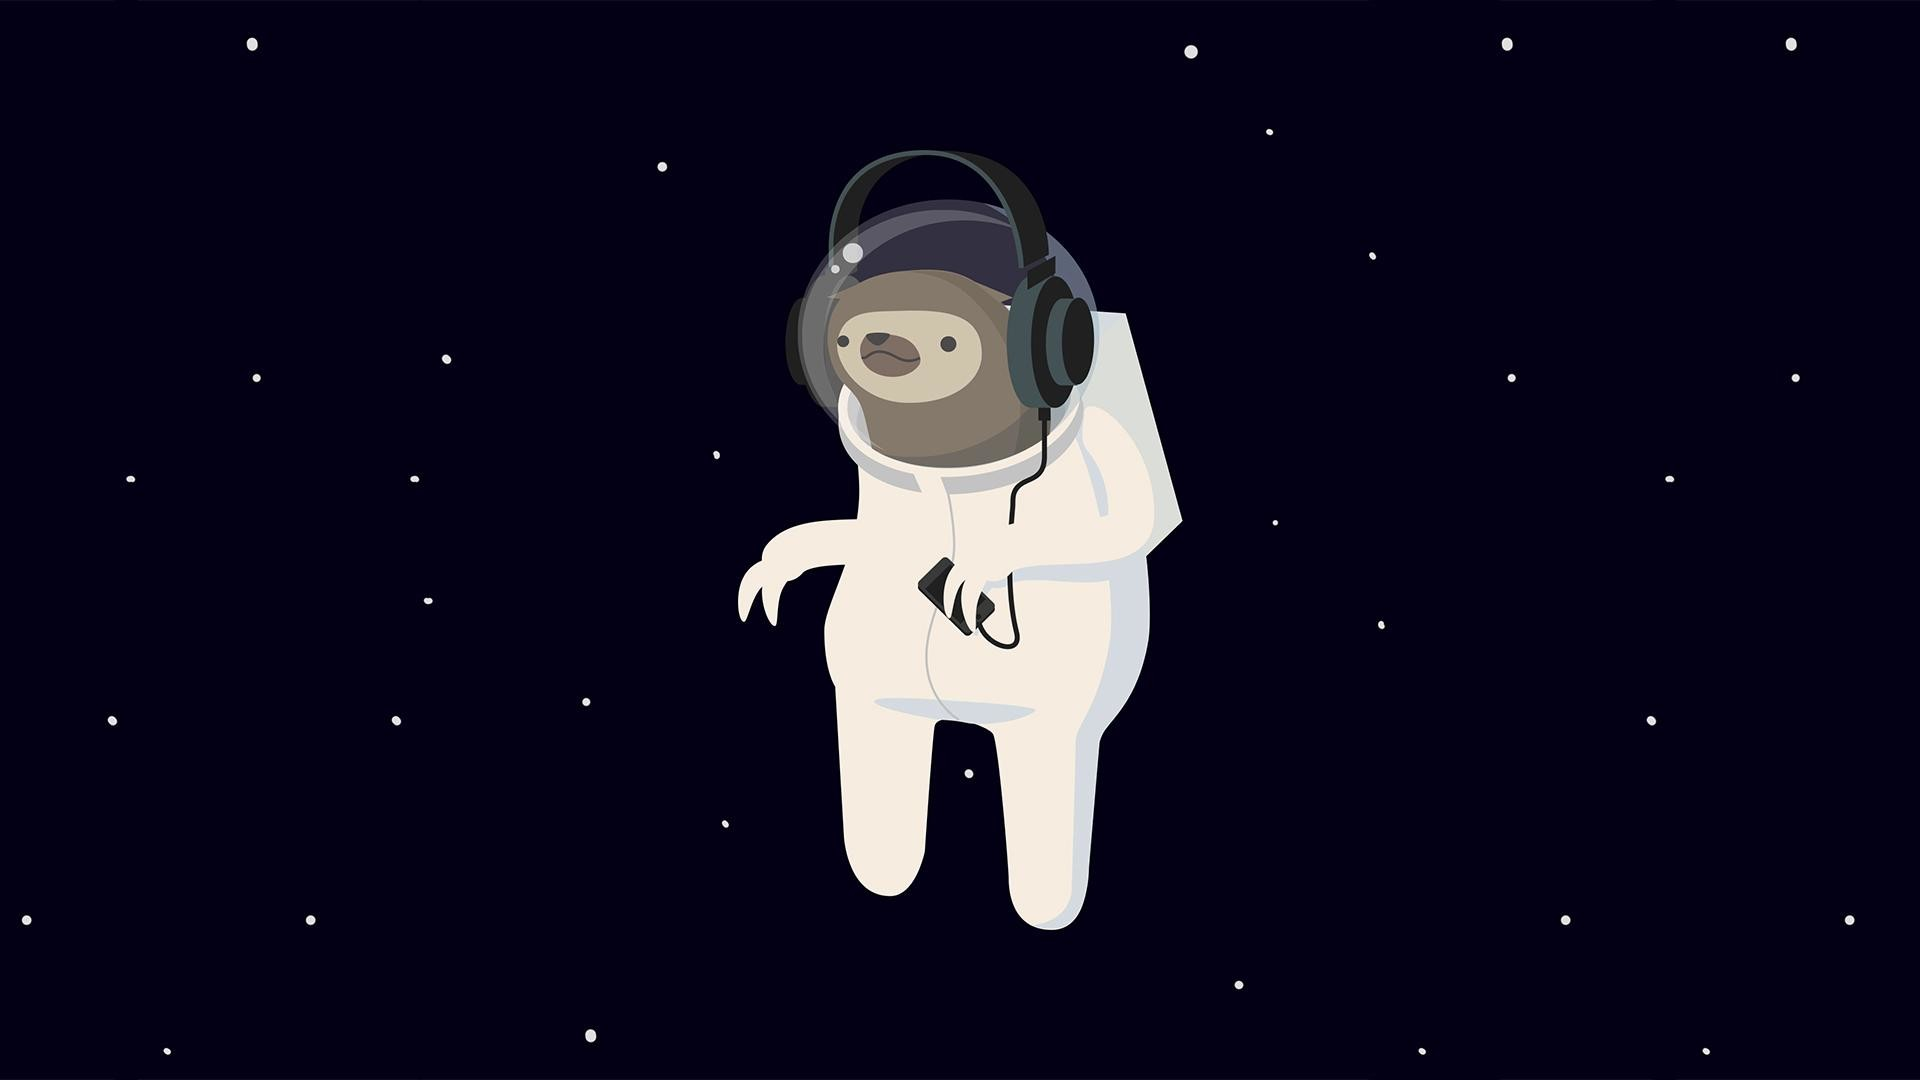 wallpaper.wiki-Free-Astronaut-Picture-Download-PIC-WPD0013901